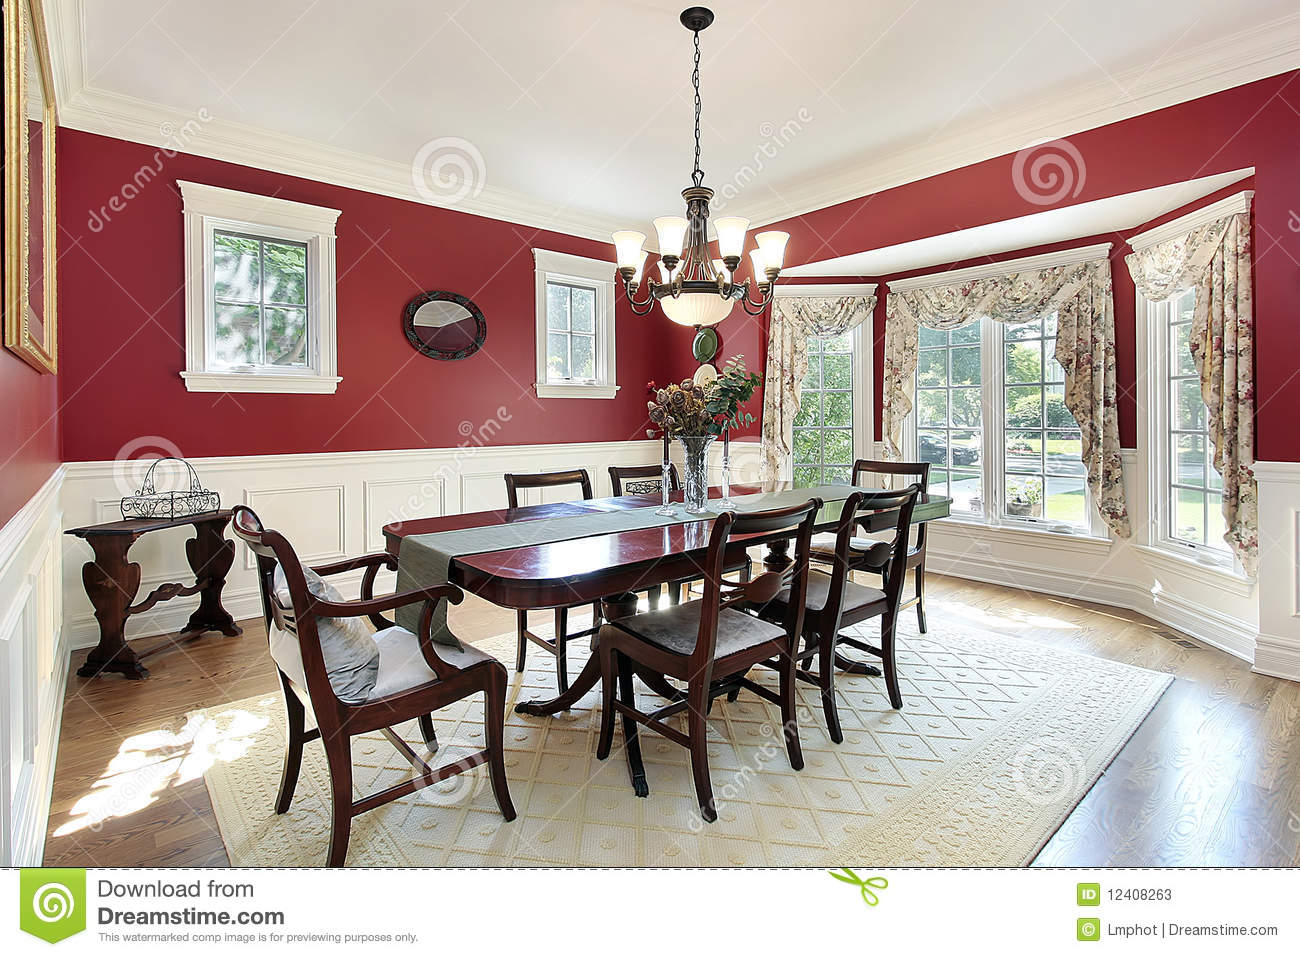 Dining Room With Red Walls Stock Image Image Of Luxury 12408263